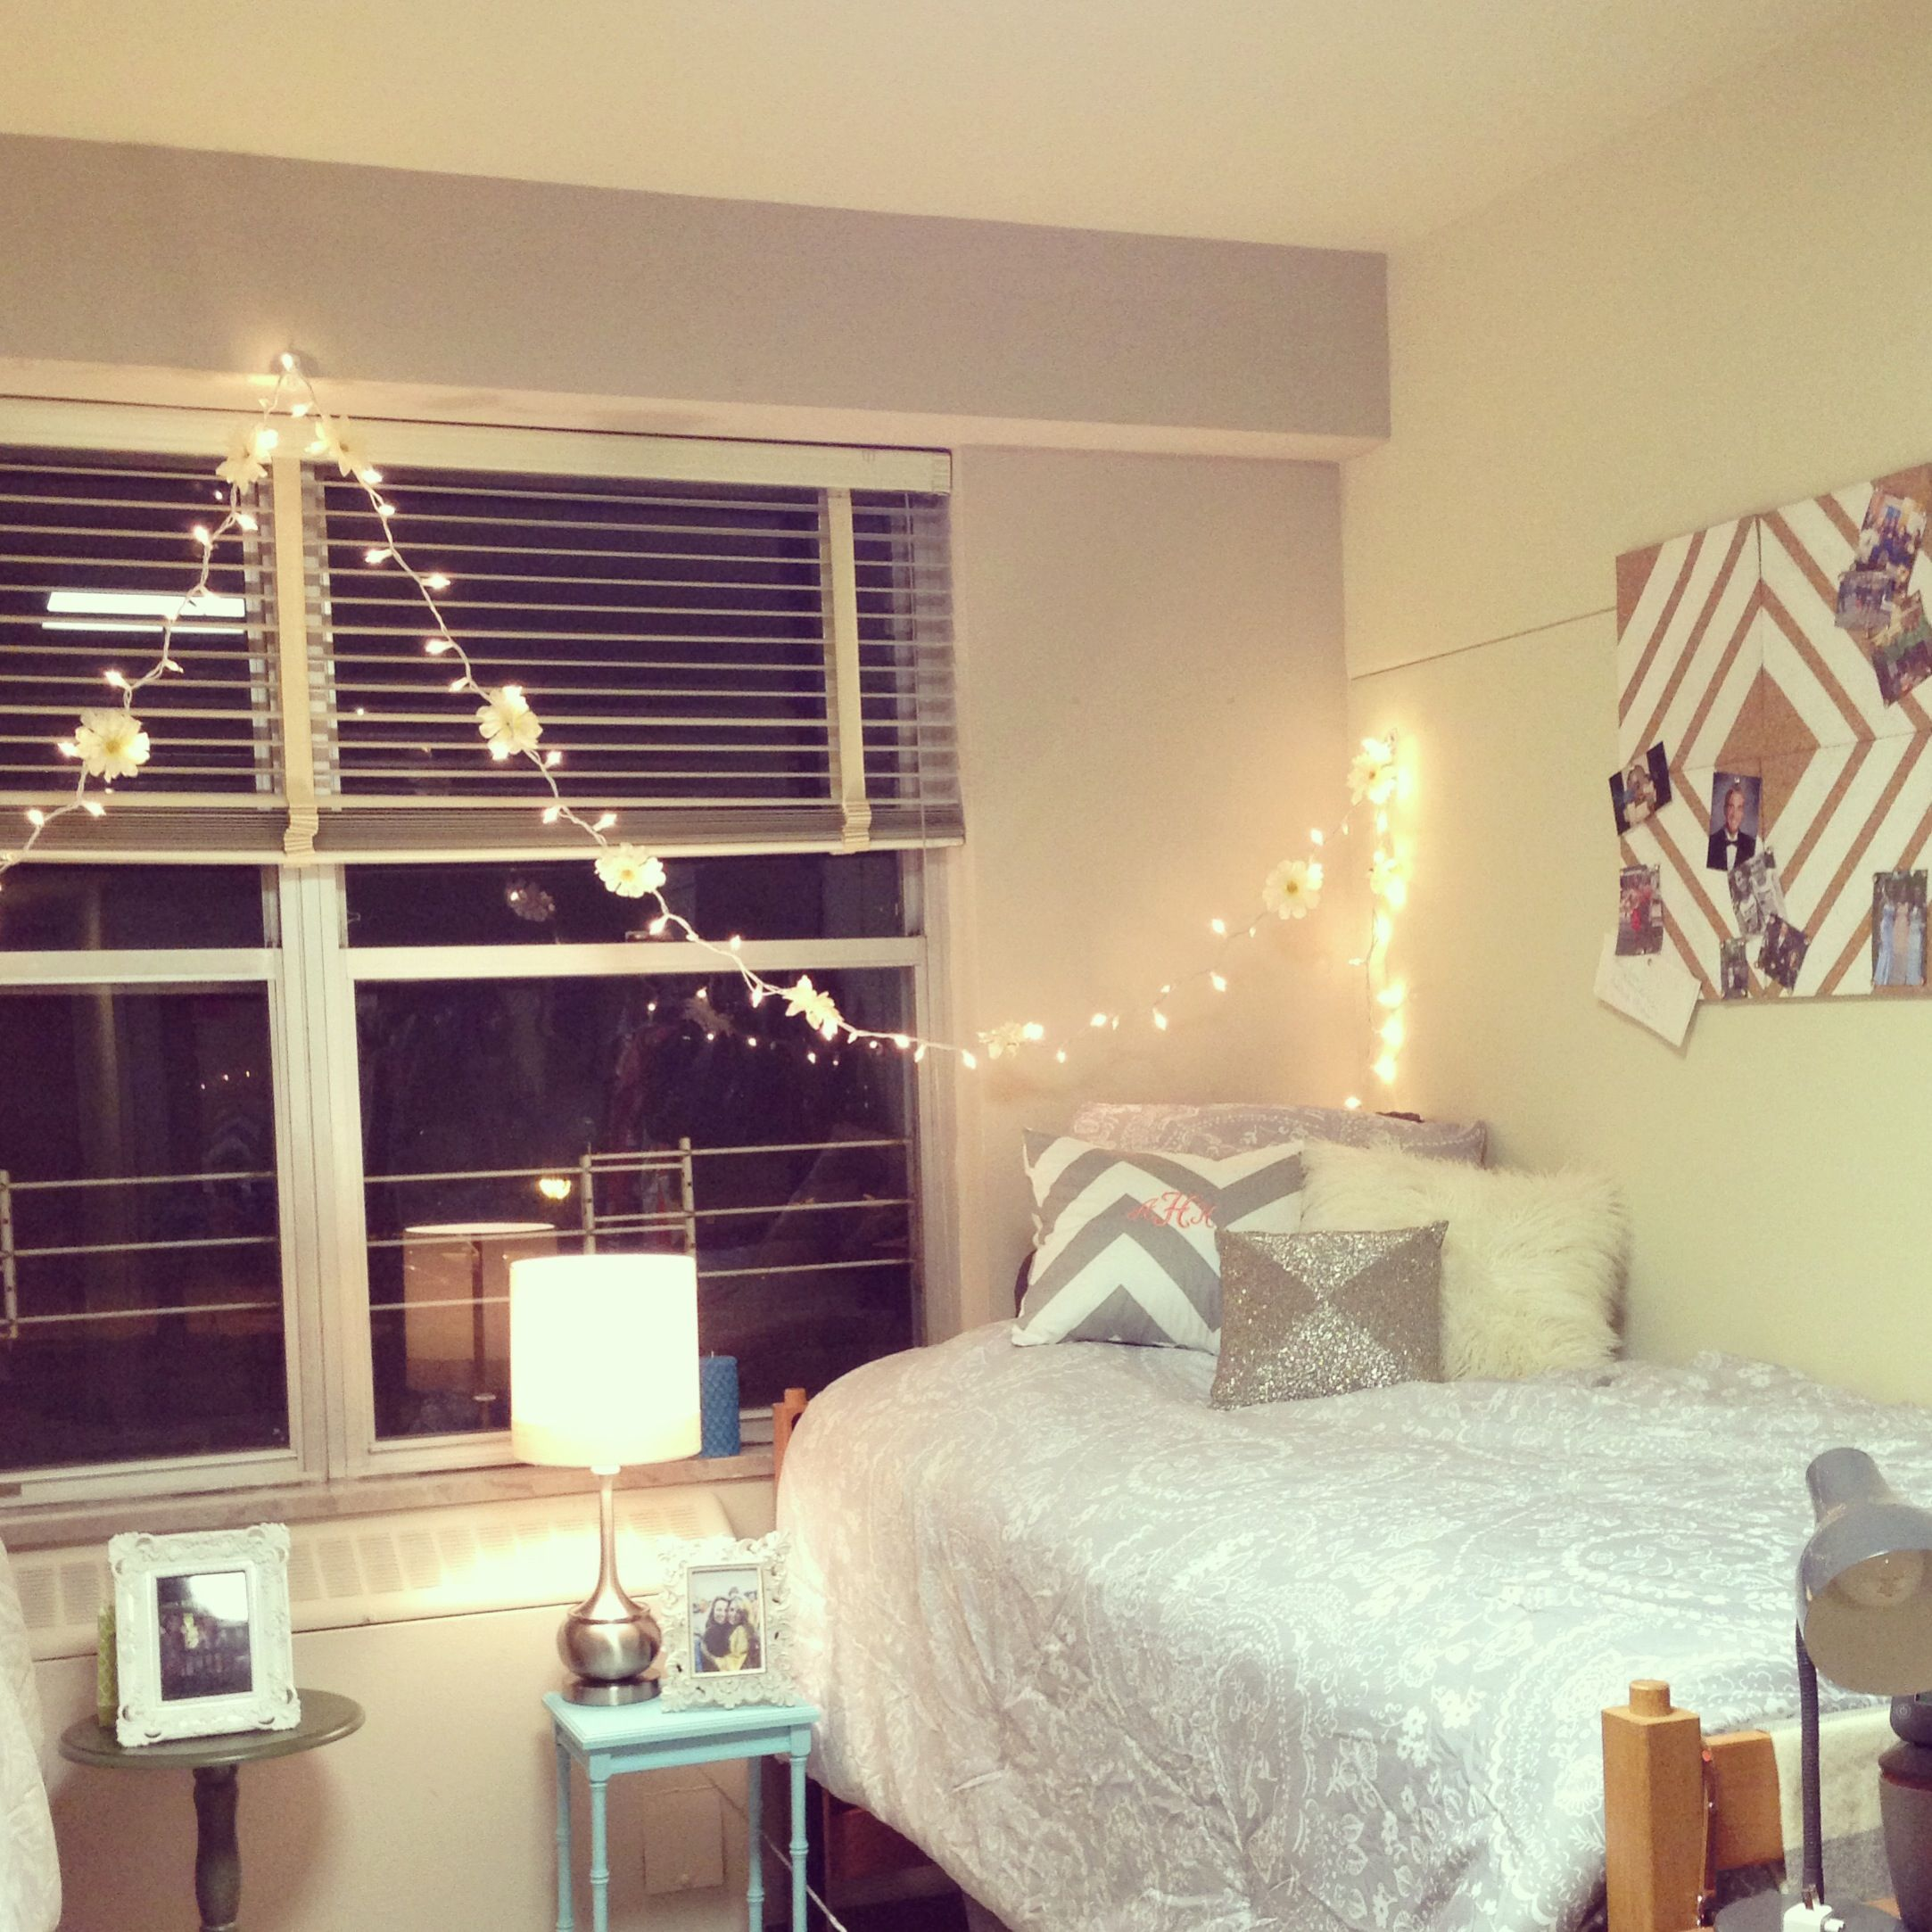 Dorm room charming pinterest dorm room dorm and lights - Cute girl room ideas ...